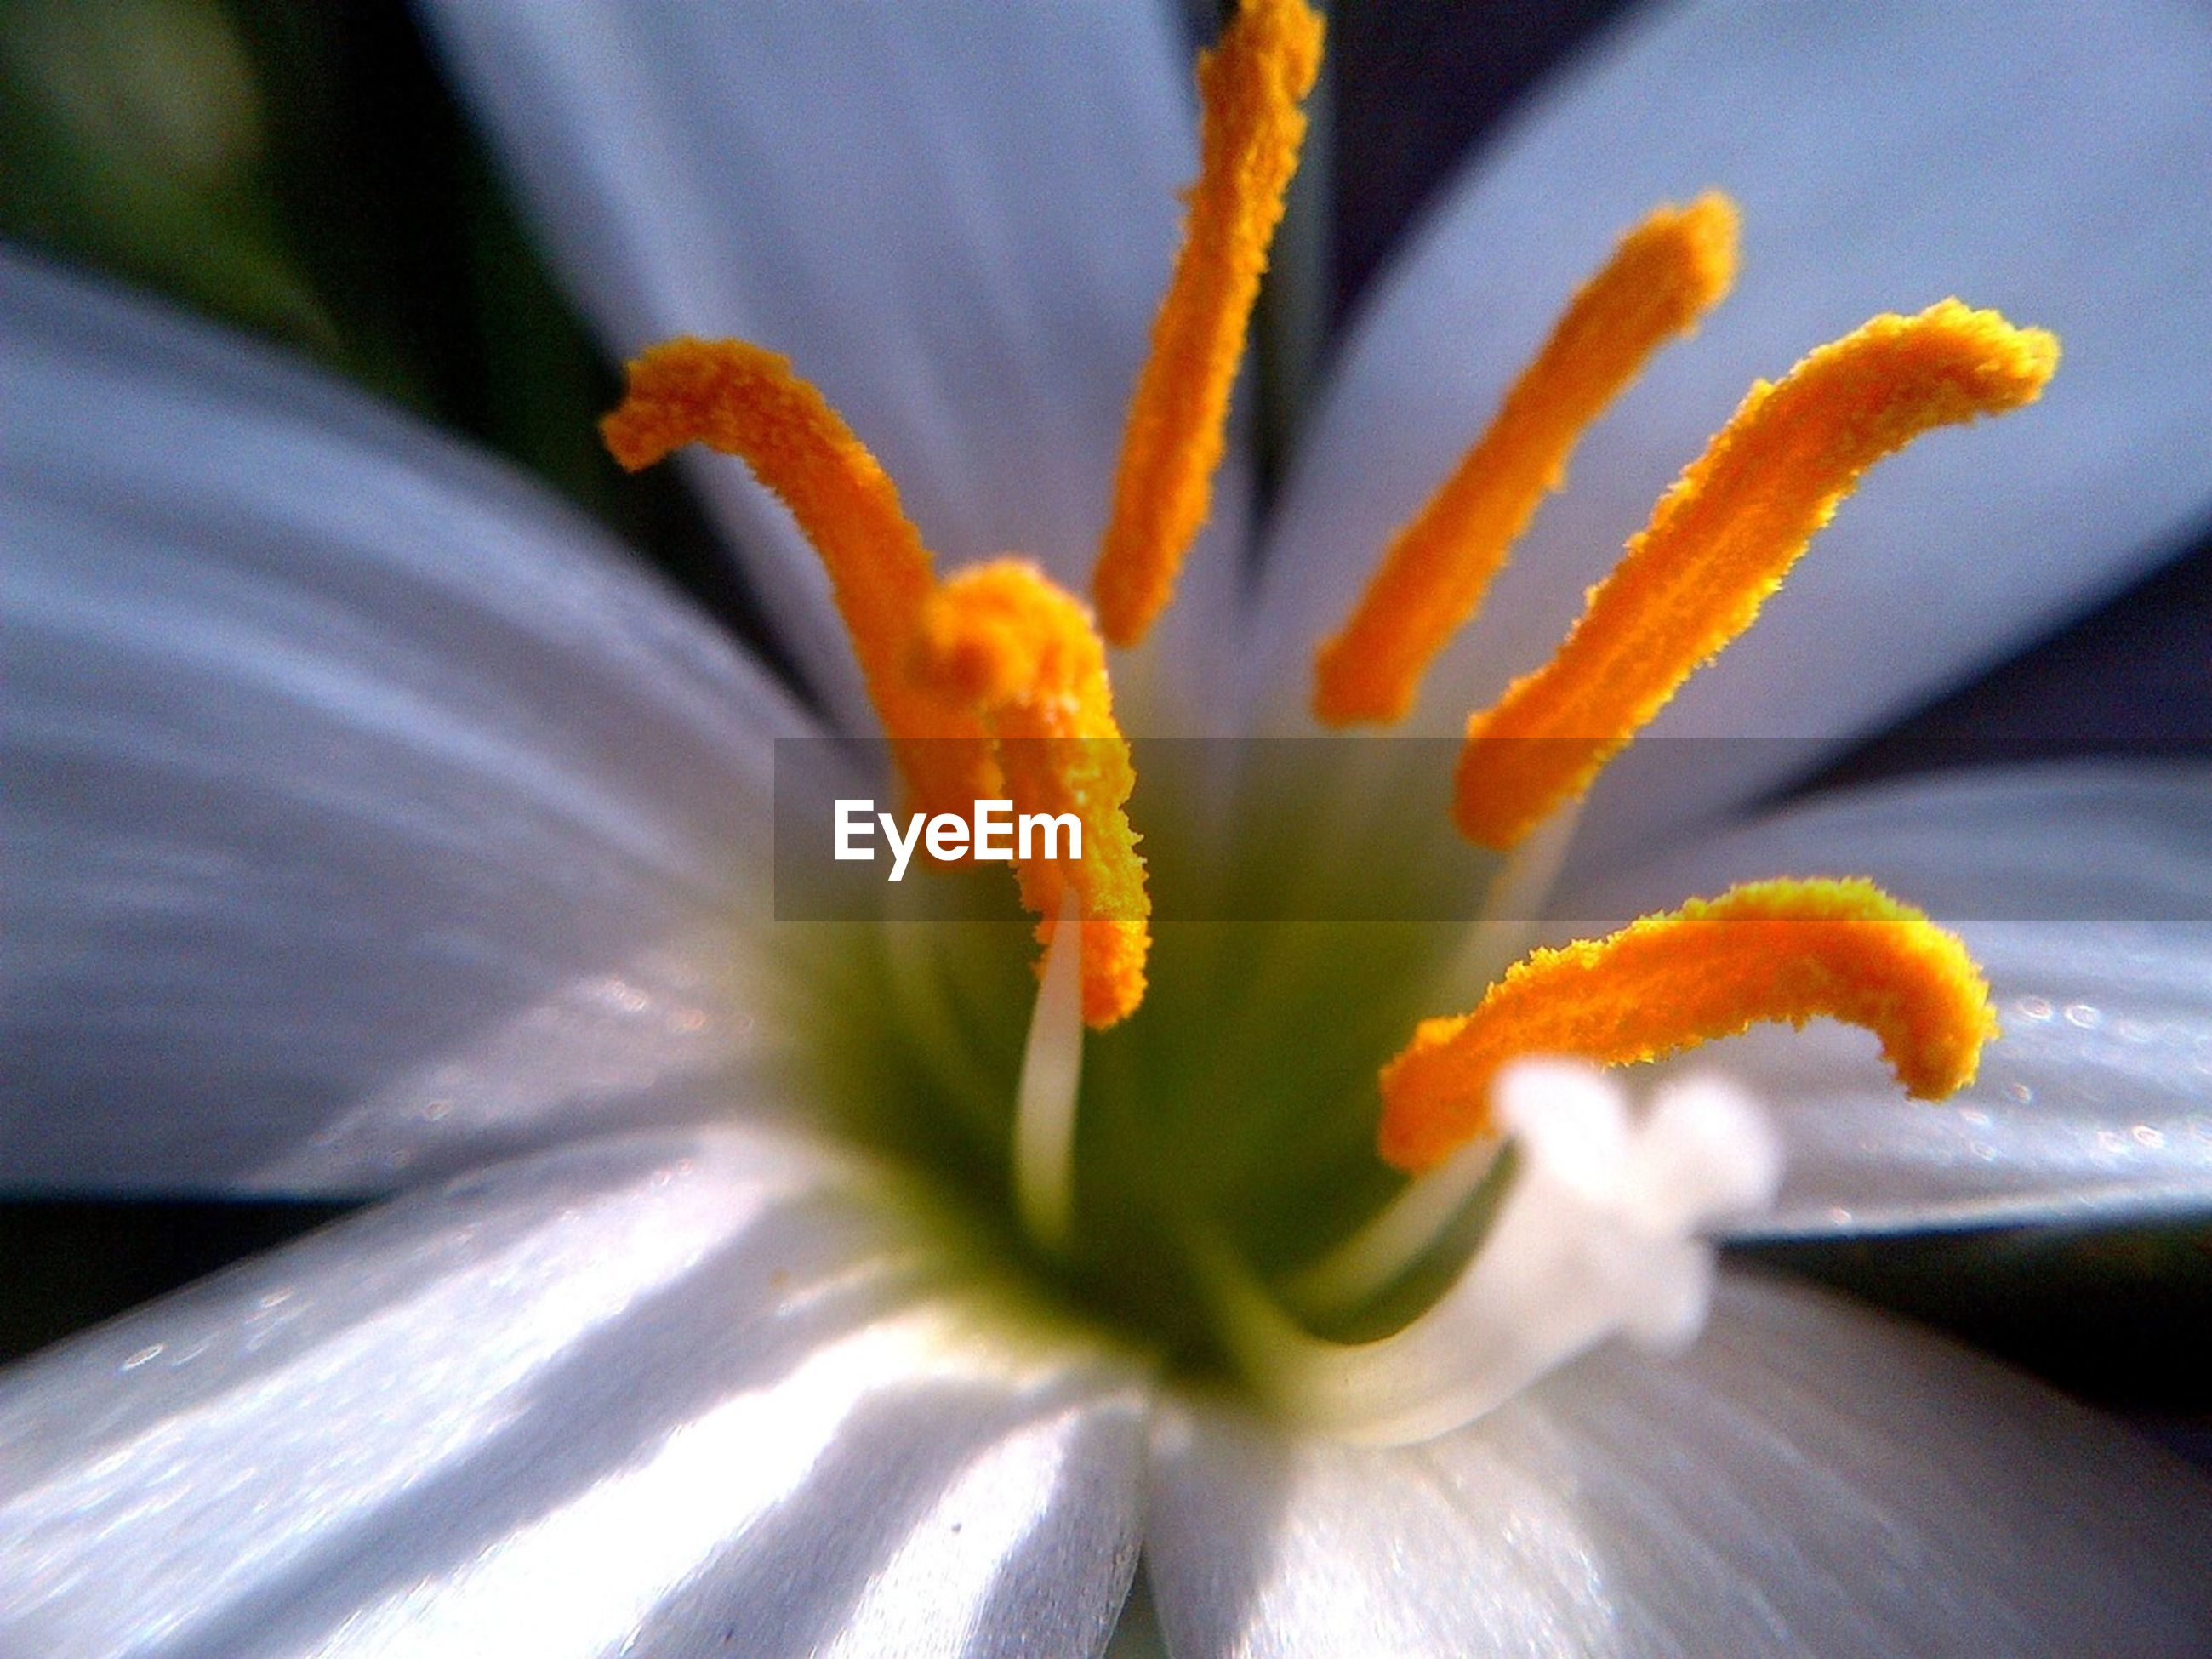 flower, petal, freshness, flower head, fragility, yellow, close-up, beauty in nature, growth, pollen, nature, blooming, single flower, plant, focus on foreground, stamen, in bloom, selective focus, blossom, no people